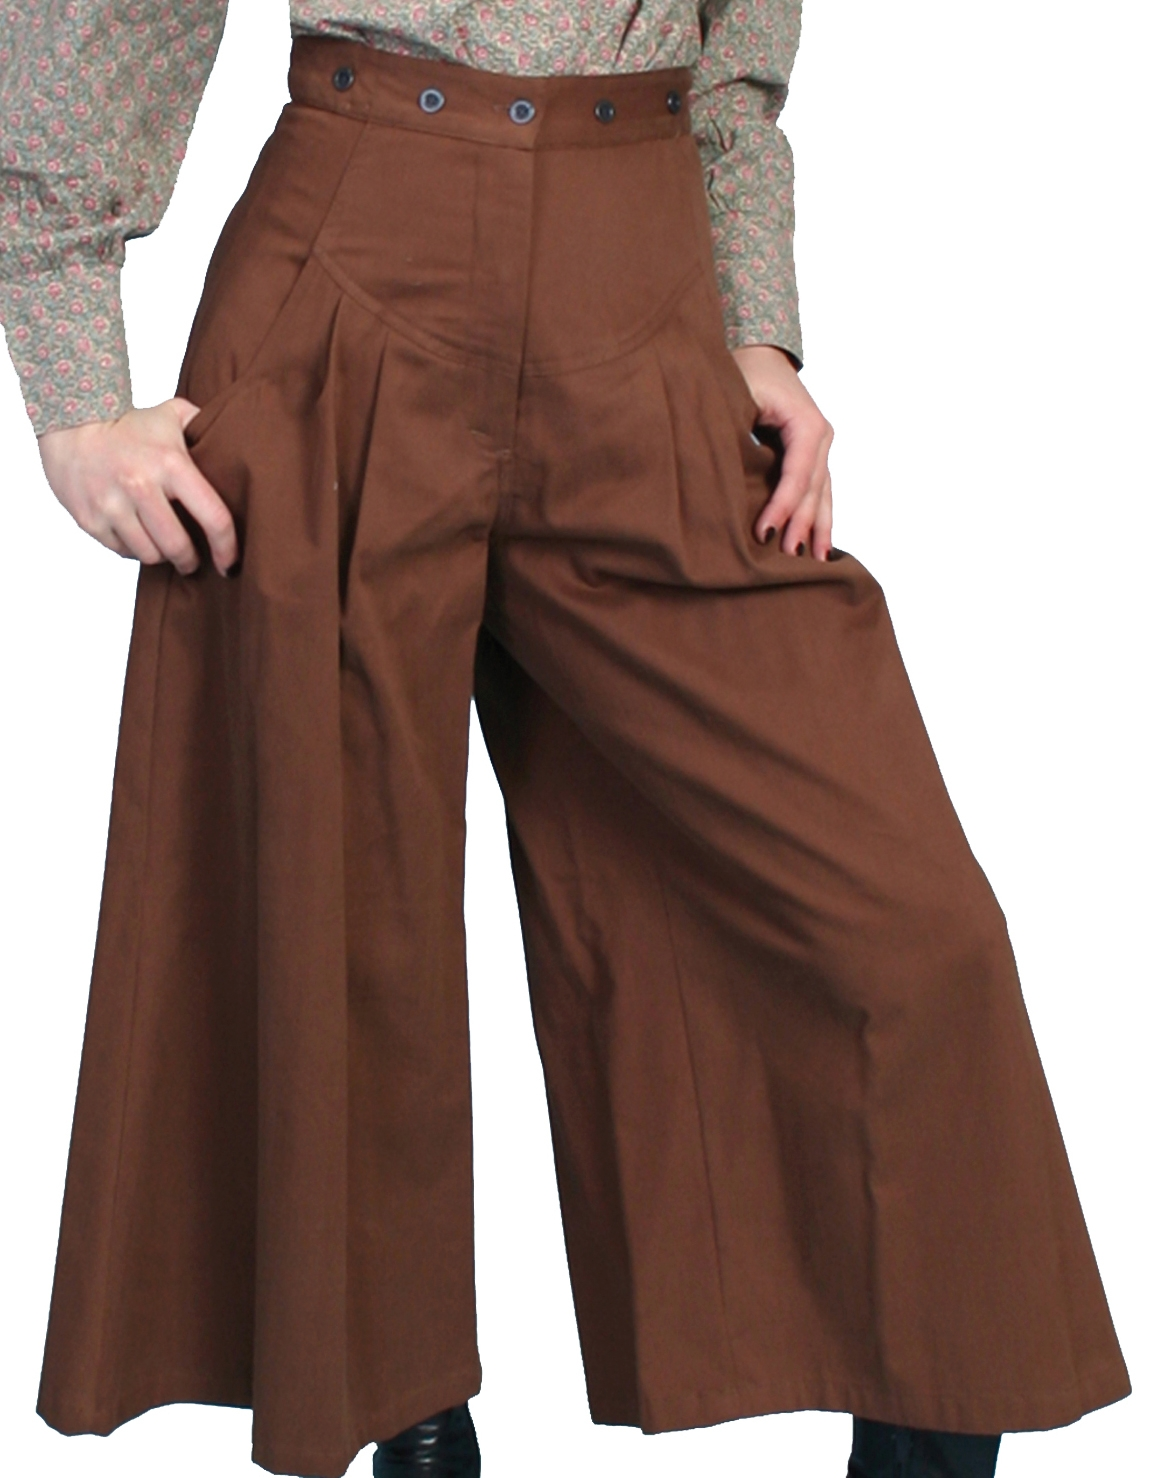 riding pants womens photo - 2